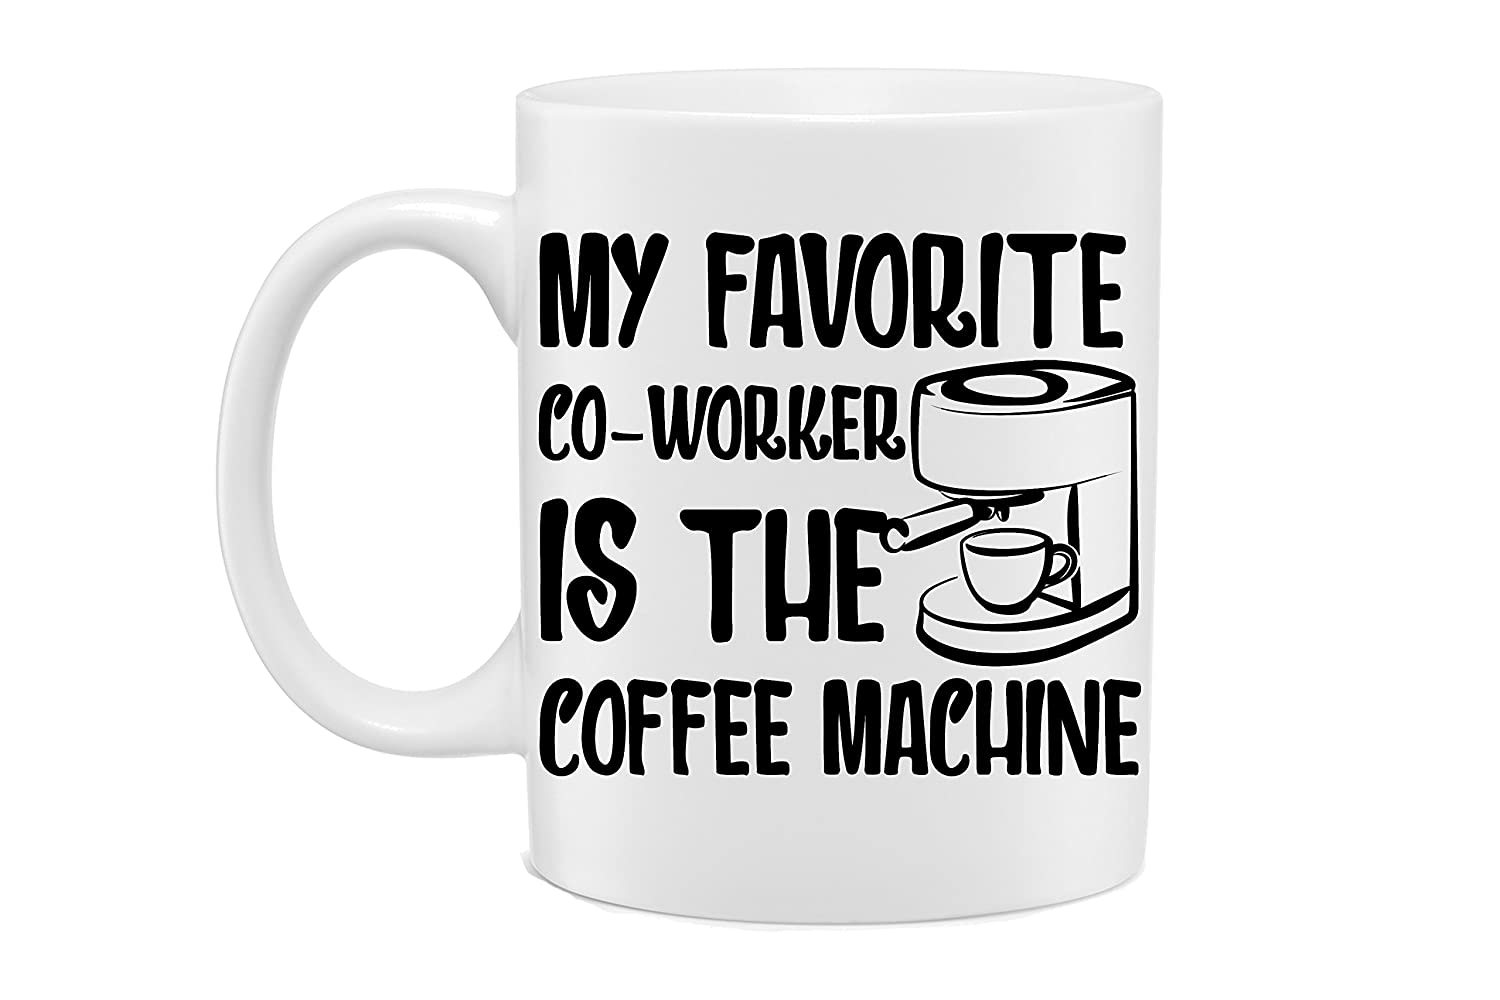 Great Gift for Boss Teachers and Everyone by Mad Ink Fashions Novelty Coffee Mug White 11 Oz Co-Works Funny Coffee Mug Employees My Favorite Co-Workers is The Coffee Machine